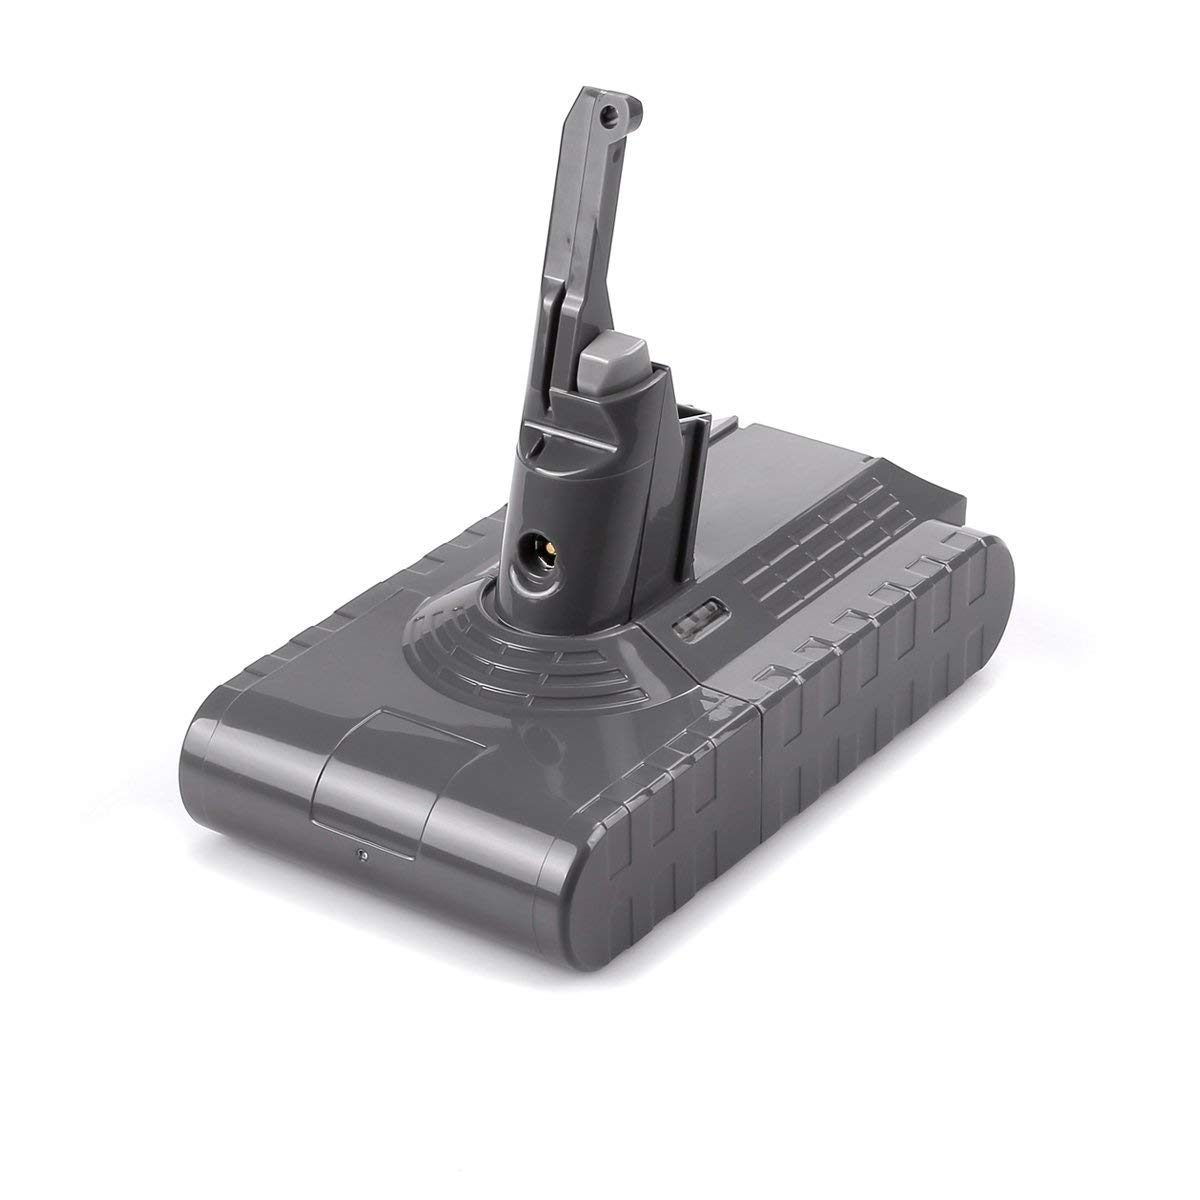 Replace Battery 3000 mAh 21.6V for Dyson V8 Absolute, Animal,Animal ExclusiveReplace Battery 3000 mAh 21.6V for Dyson V8 Absolute, Animal,Animal Exclusive